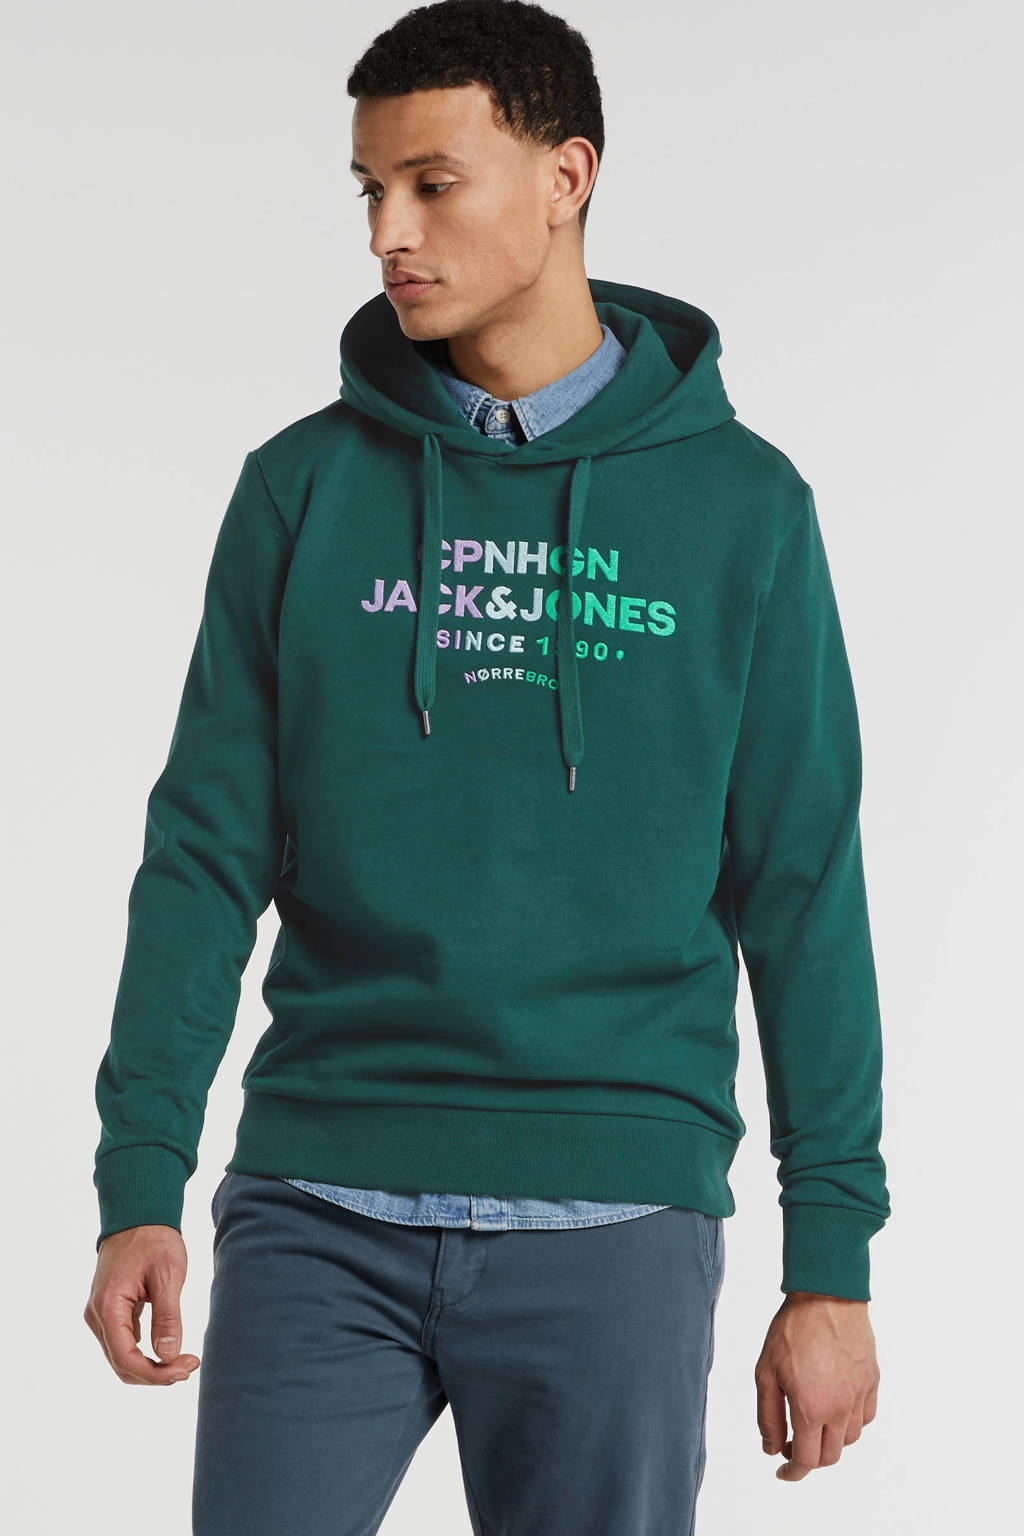 JACK & JONES ORIGINALS hoodie met logo sea moss, Sea Moss